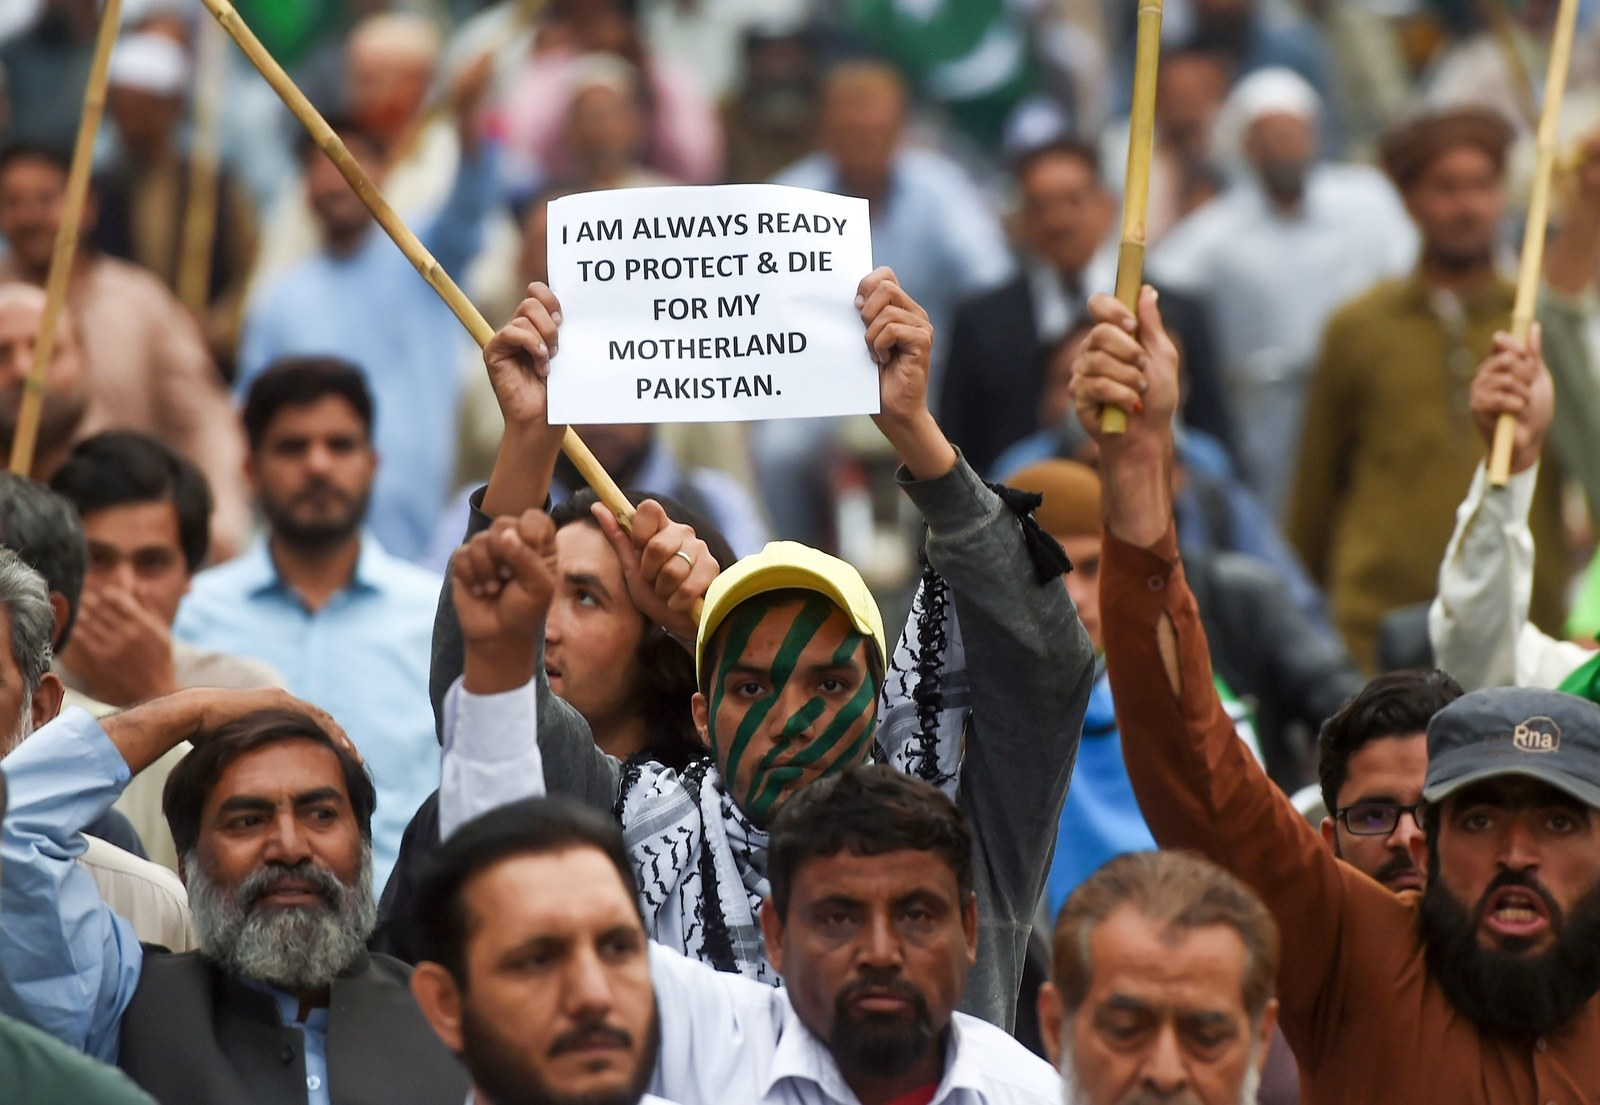 A Pakistani supporter of the Jamaat-e-Islami party holds a placard during an anti-Indian protest rally in Karachi on Feb. 28.